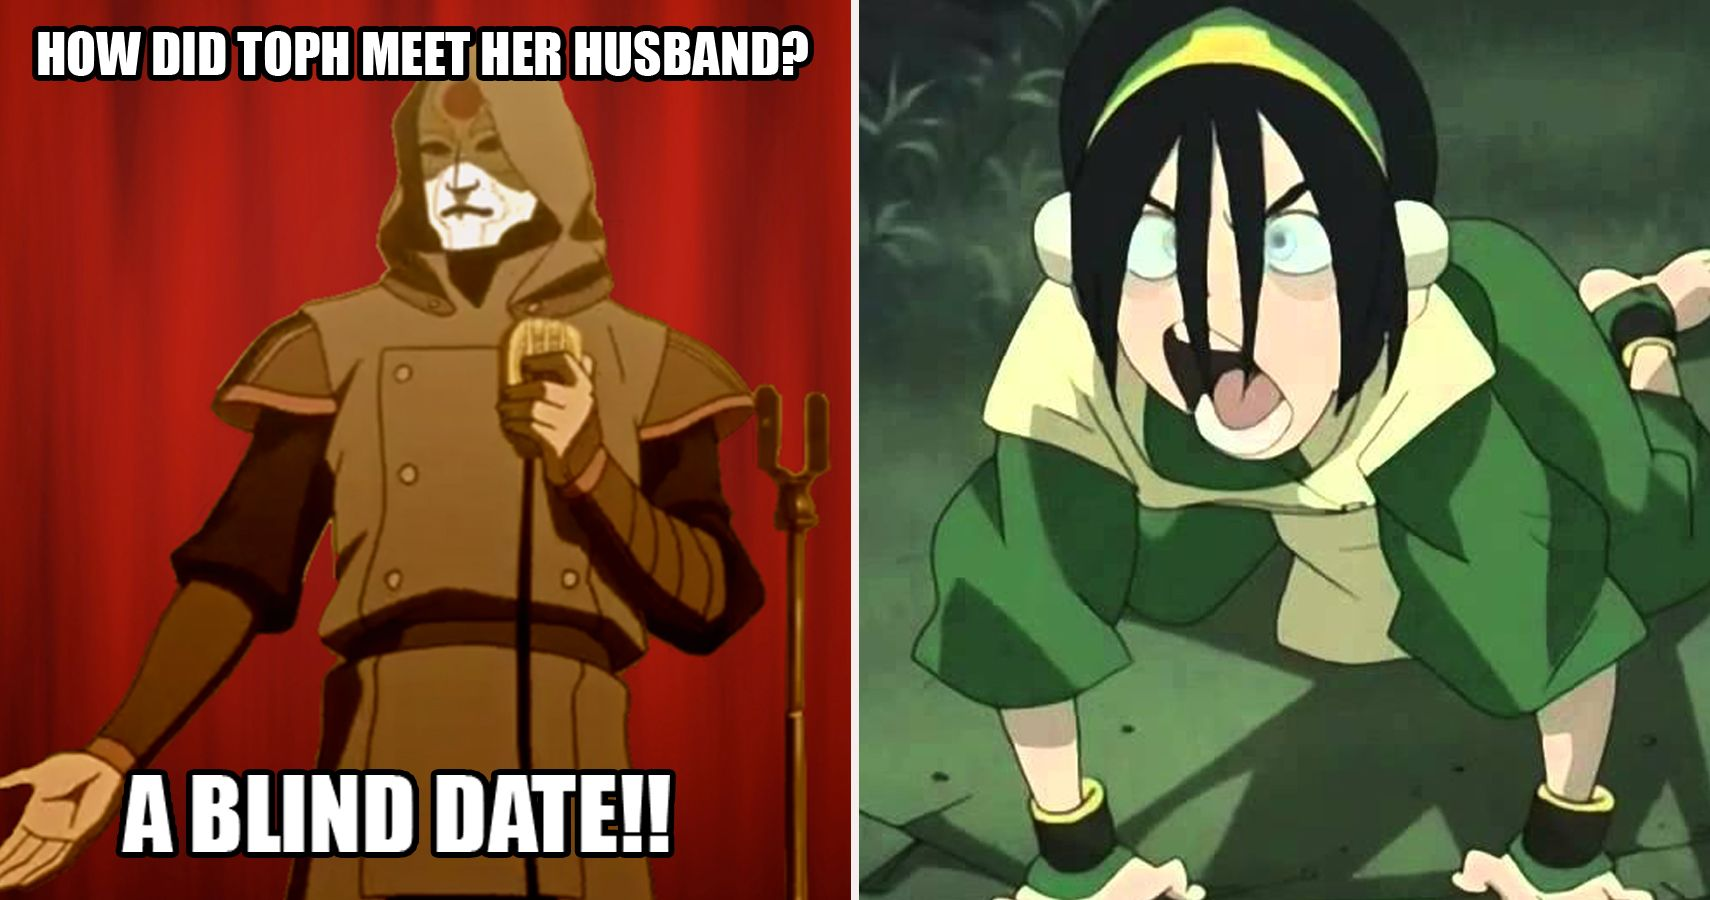 toph meme hilarious avatar the last airbender memes only true fans will